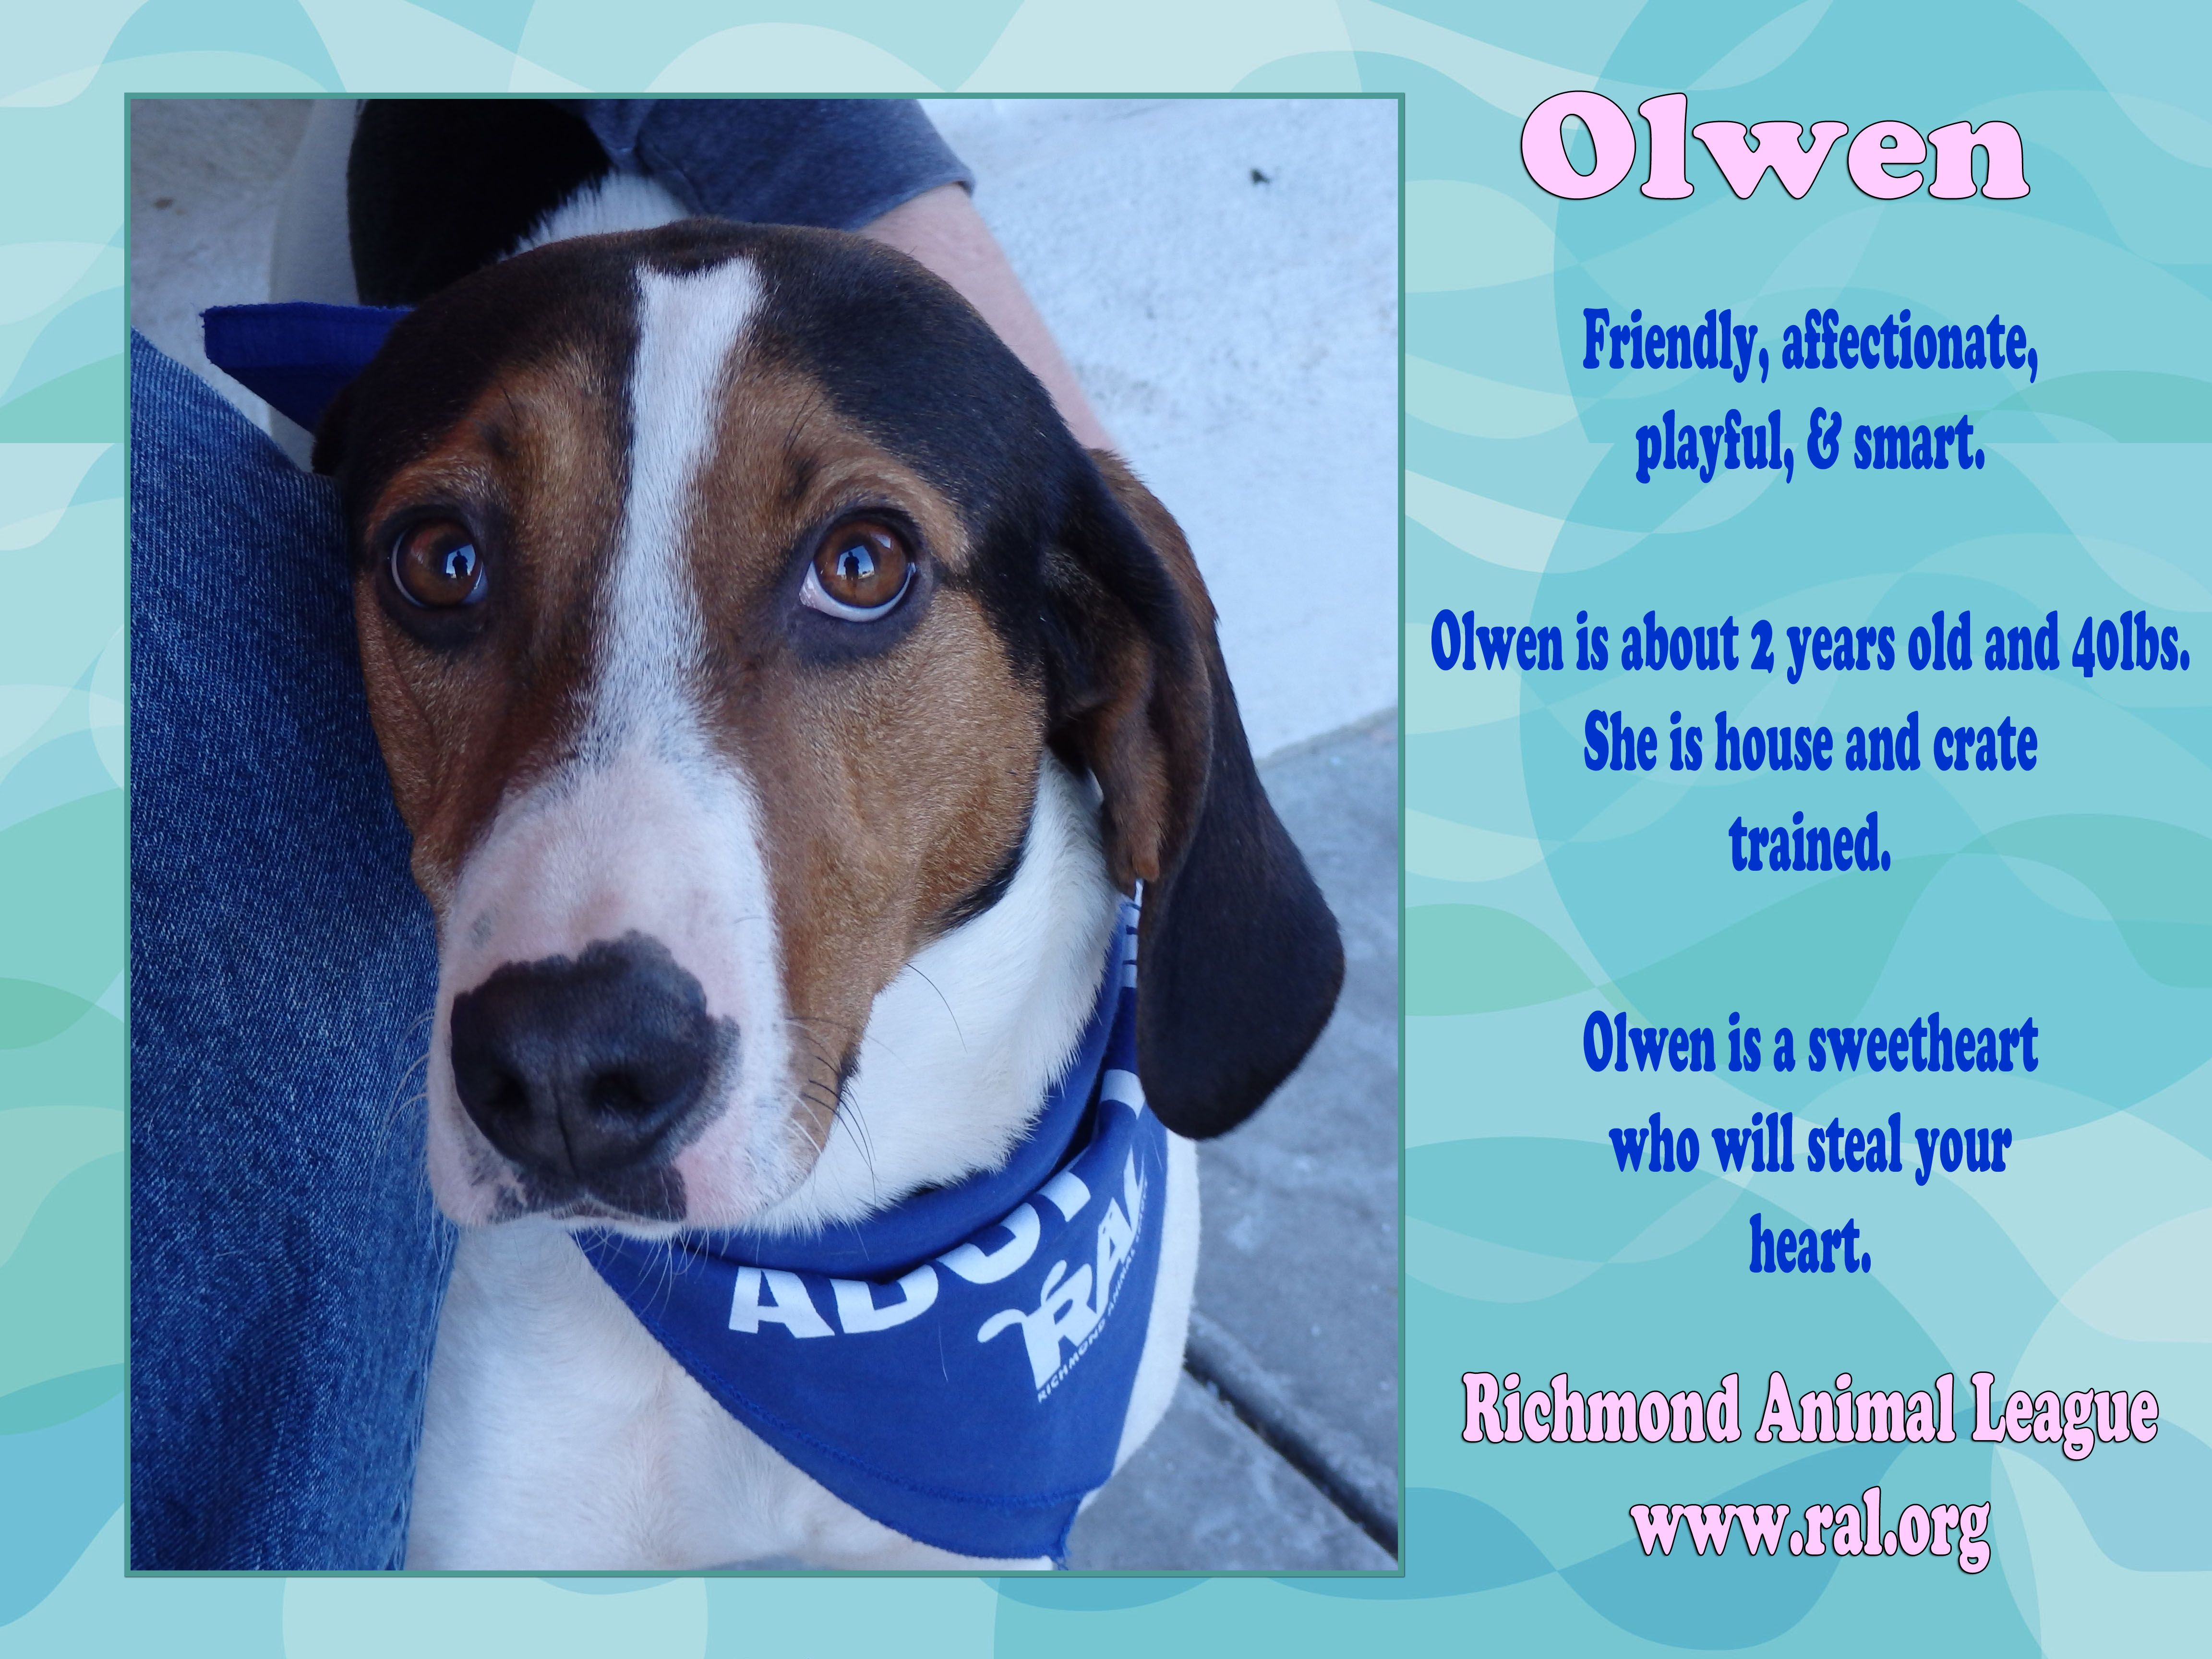 Olwen is available for adoption! Read more about Olwen at